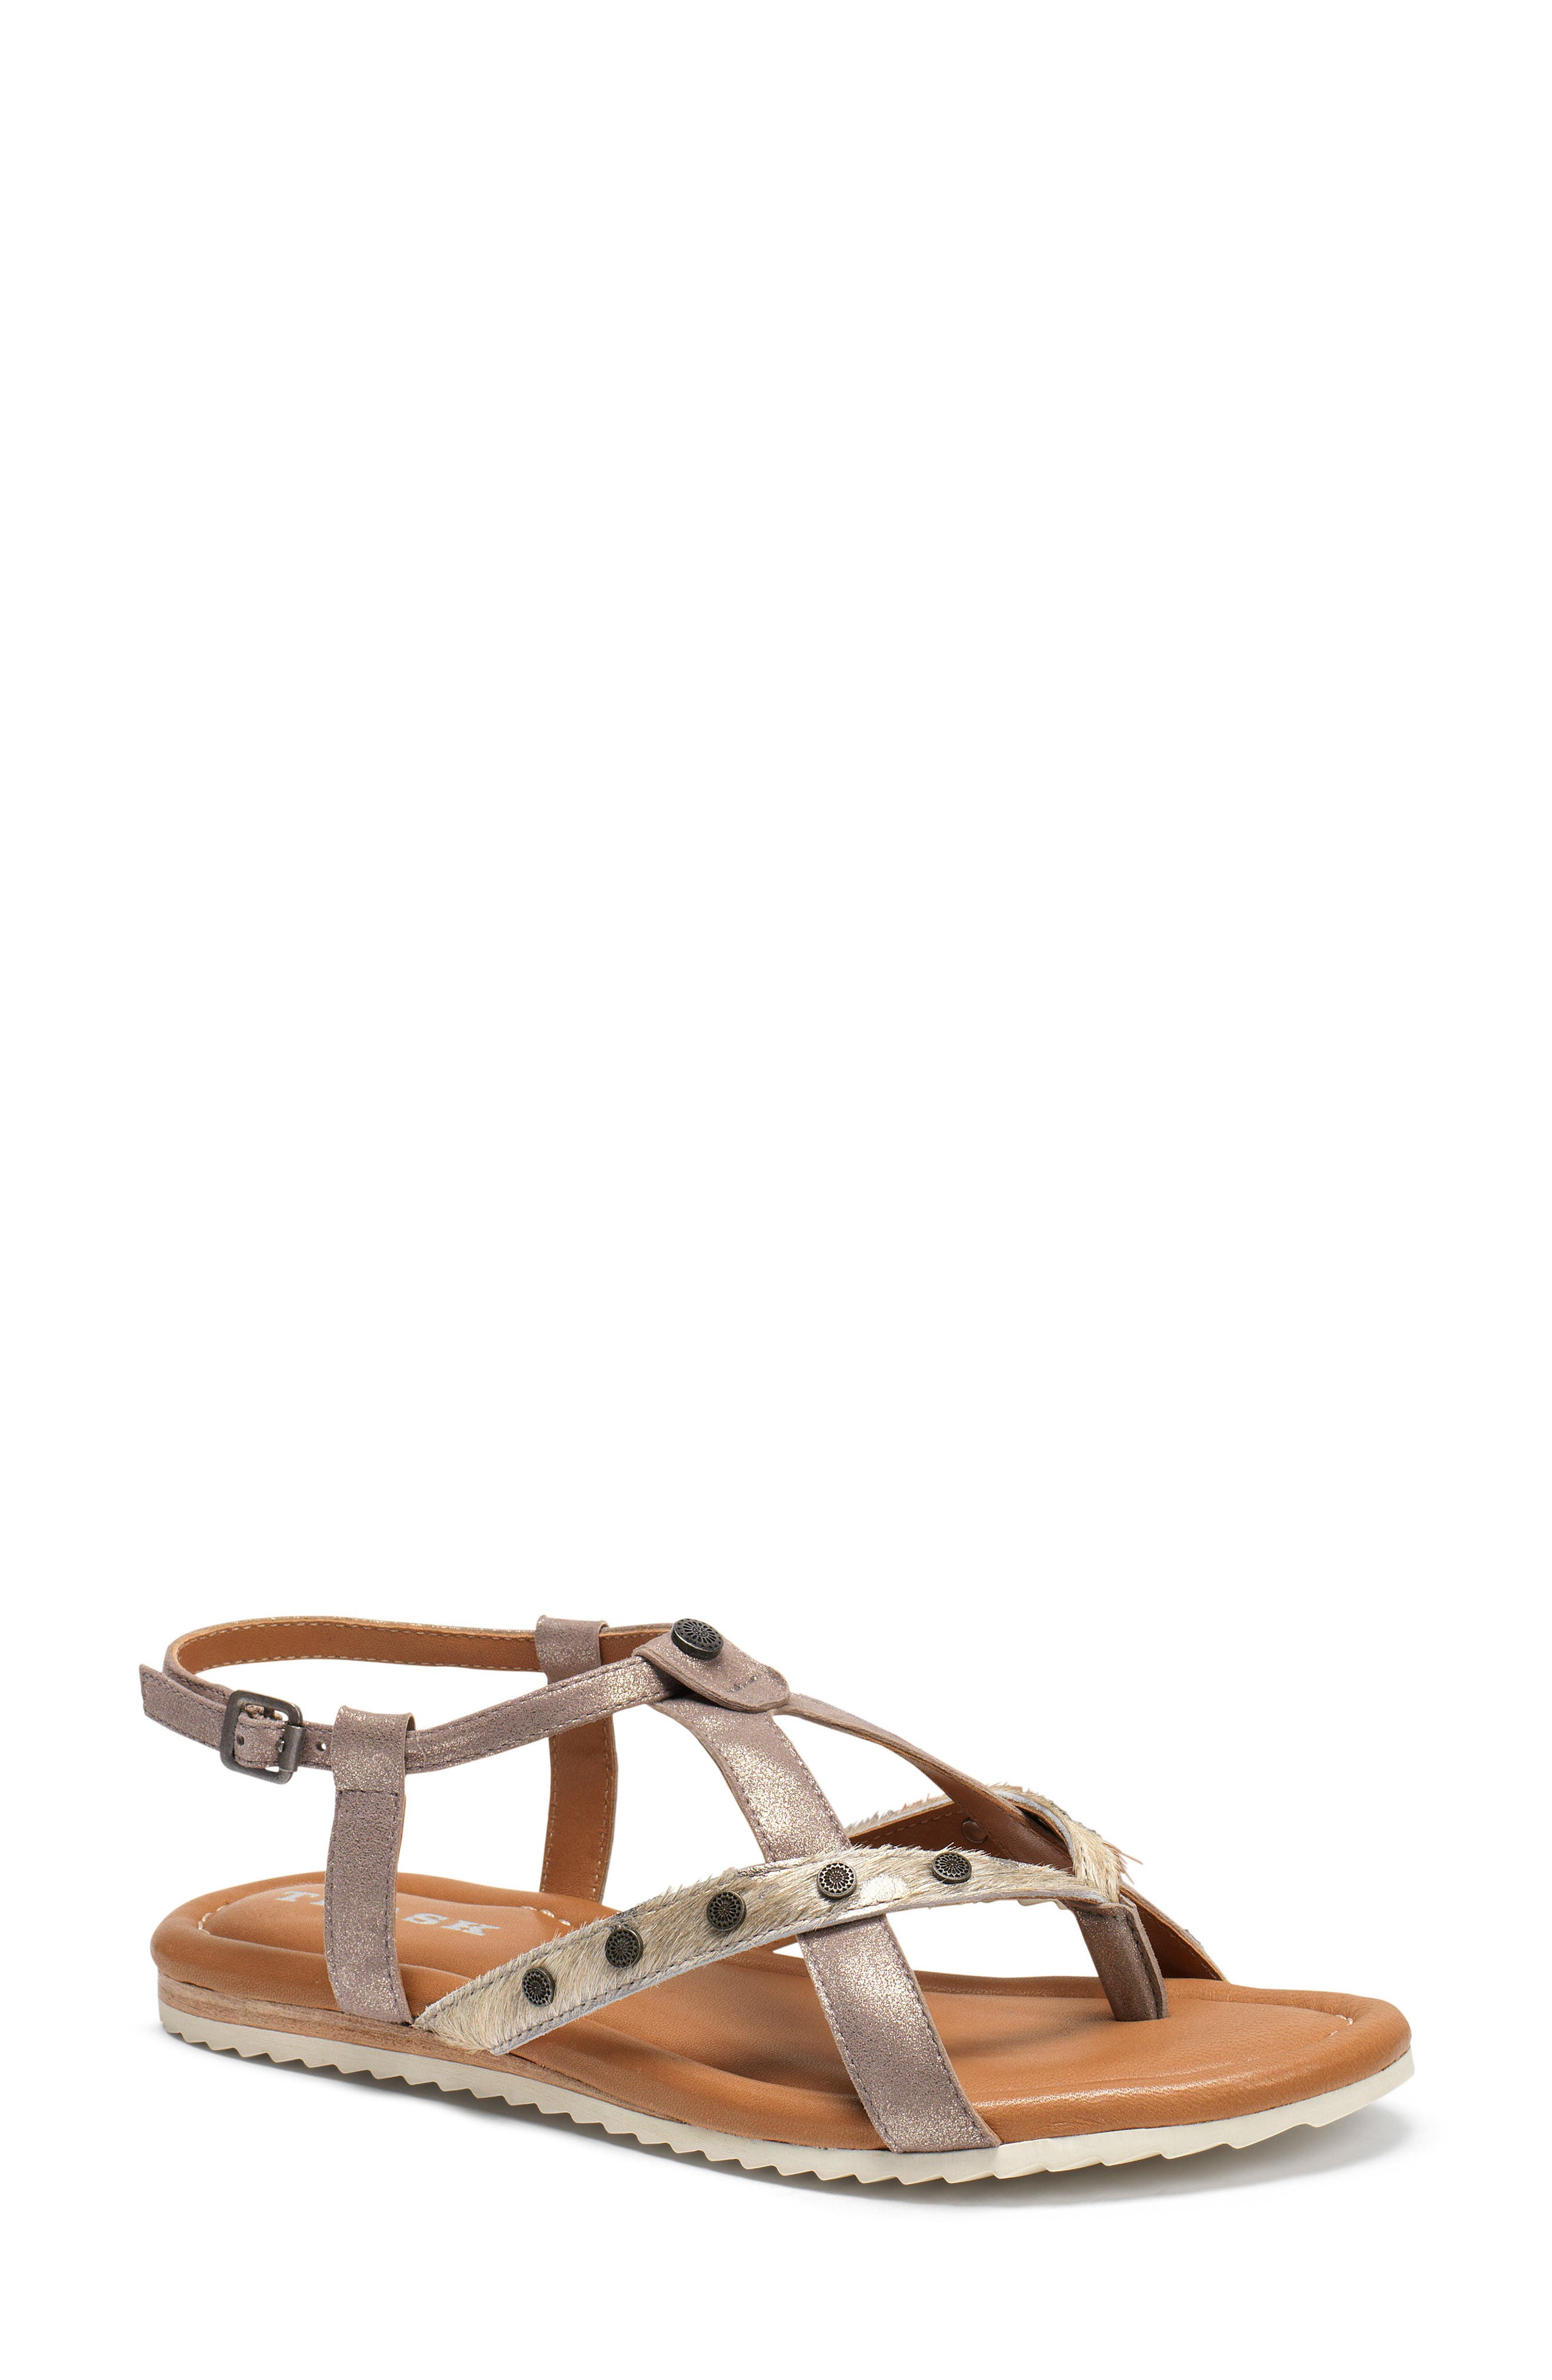 Shayla Water Resistant Sandal,                             Main thumbnail 1, color,                             PEWTER/ BONE SUEDE